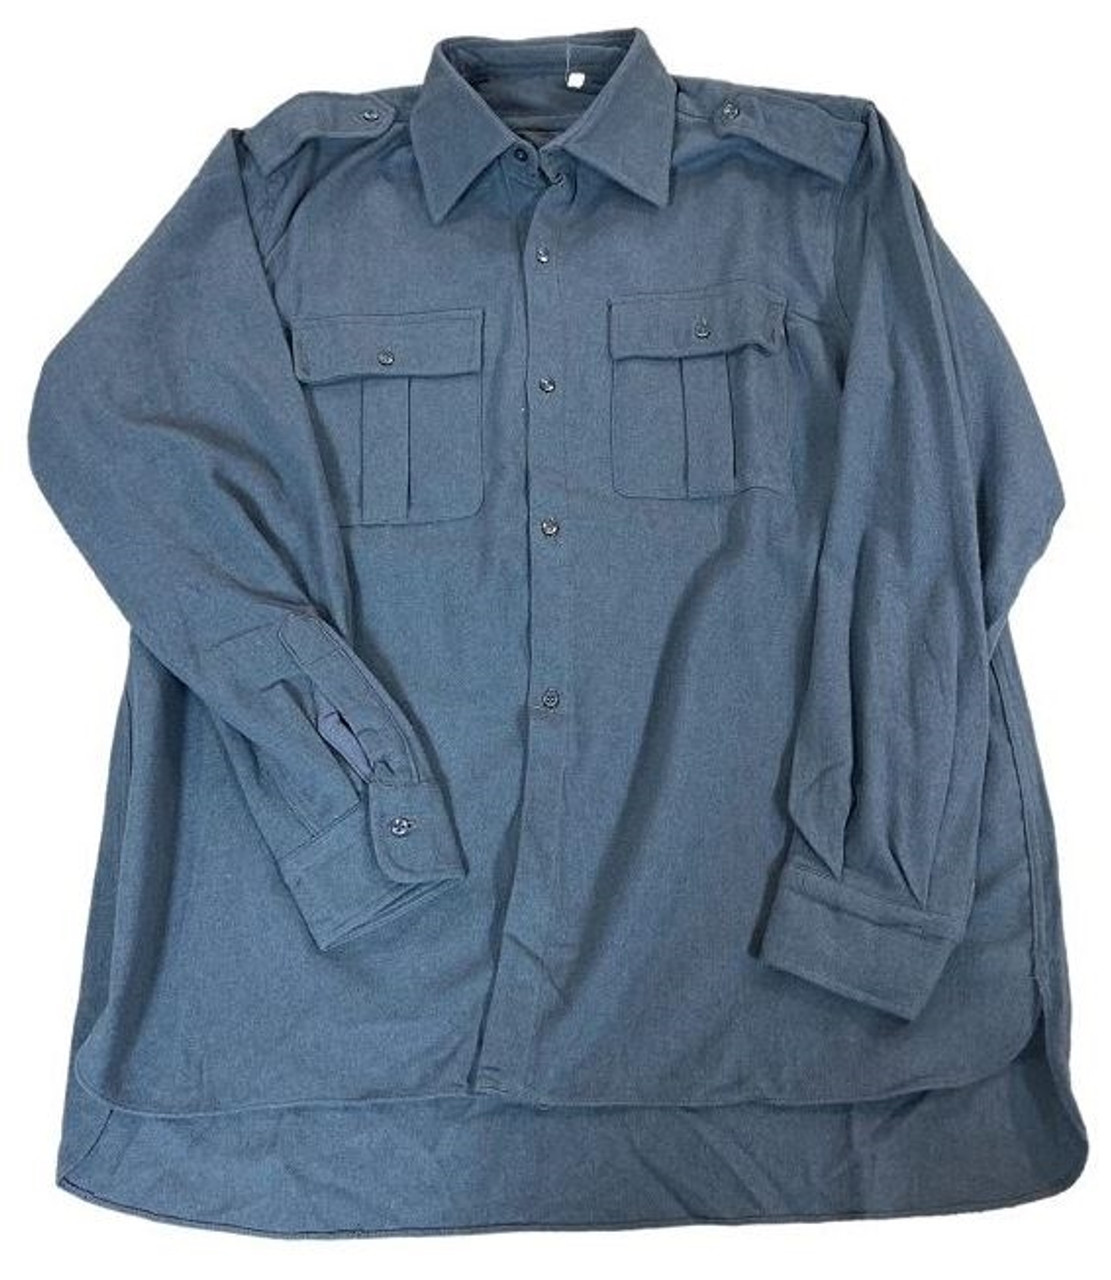 Italian Military Blue/Grey Flannel Shirt from Hessen Antique